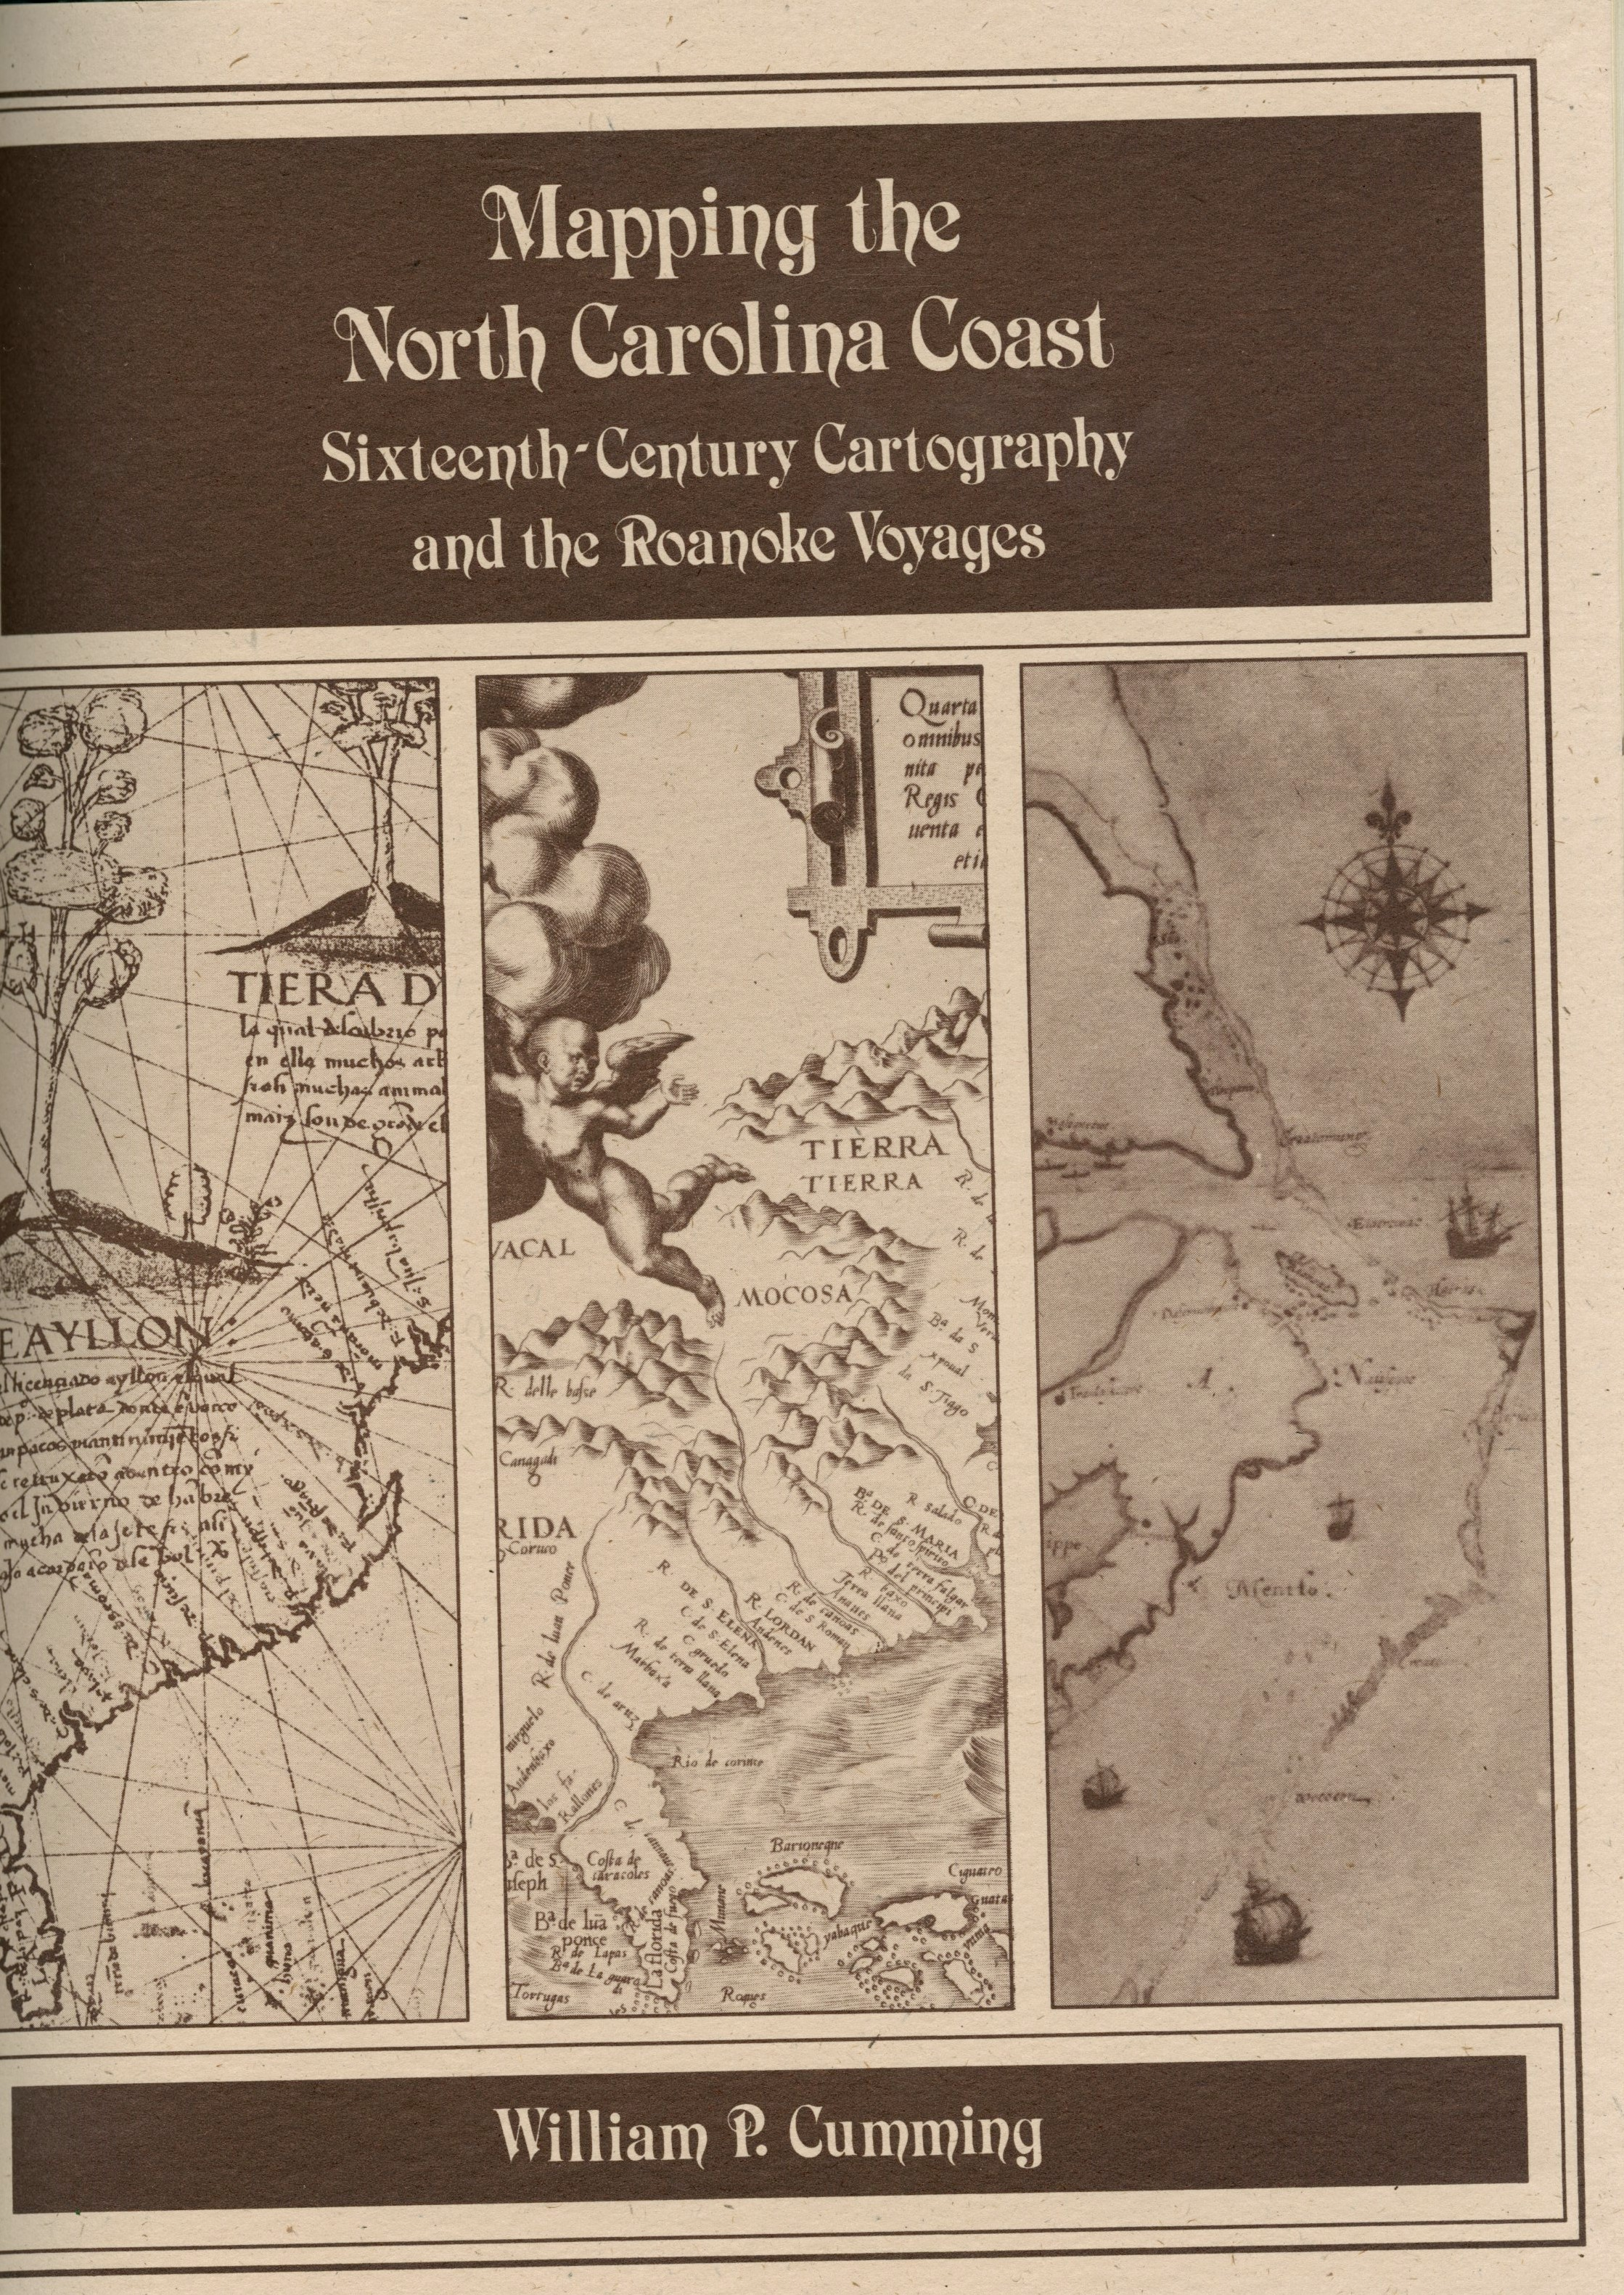 Book Title Page: Images of three maps important in the settlement of North American and North Carolina in particular, From left to right: Diego Ribero's 1529 World Map, Diego Gutierrez's 1562 map of America, John White's 1582 map of Virginia